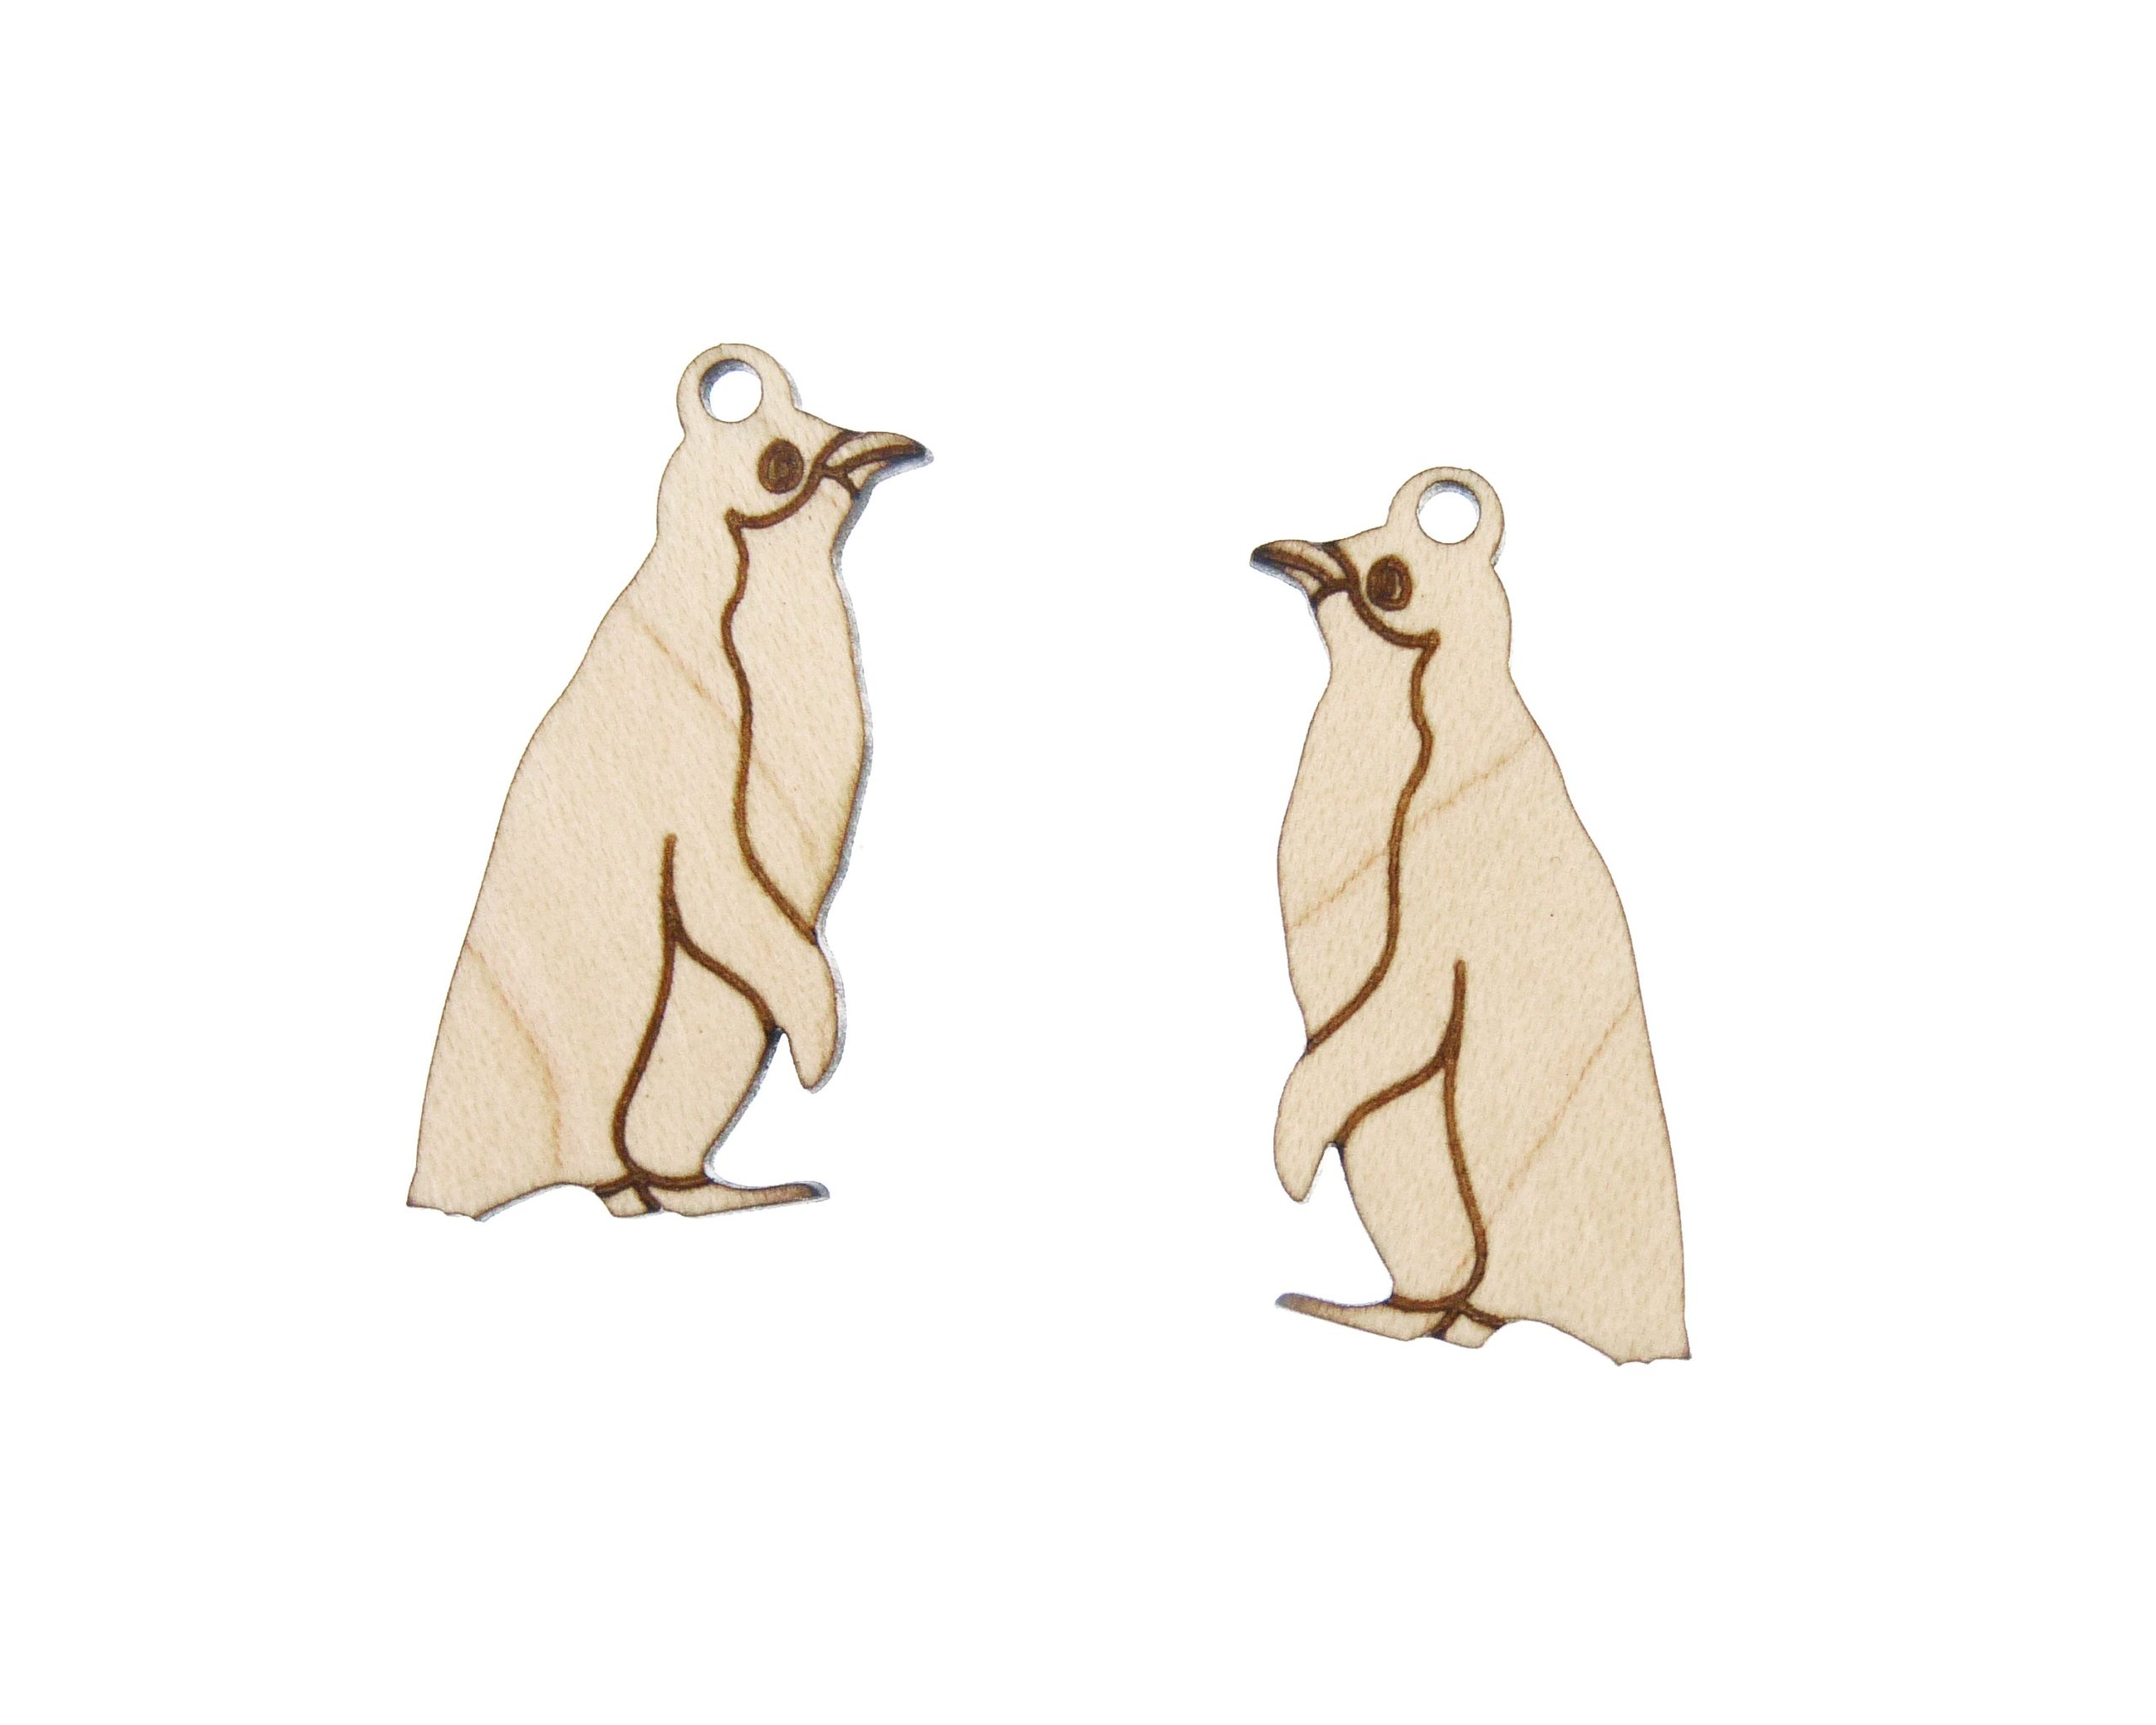 Penguins Engraved Wood Drop Jewelry Charms